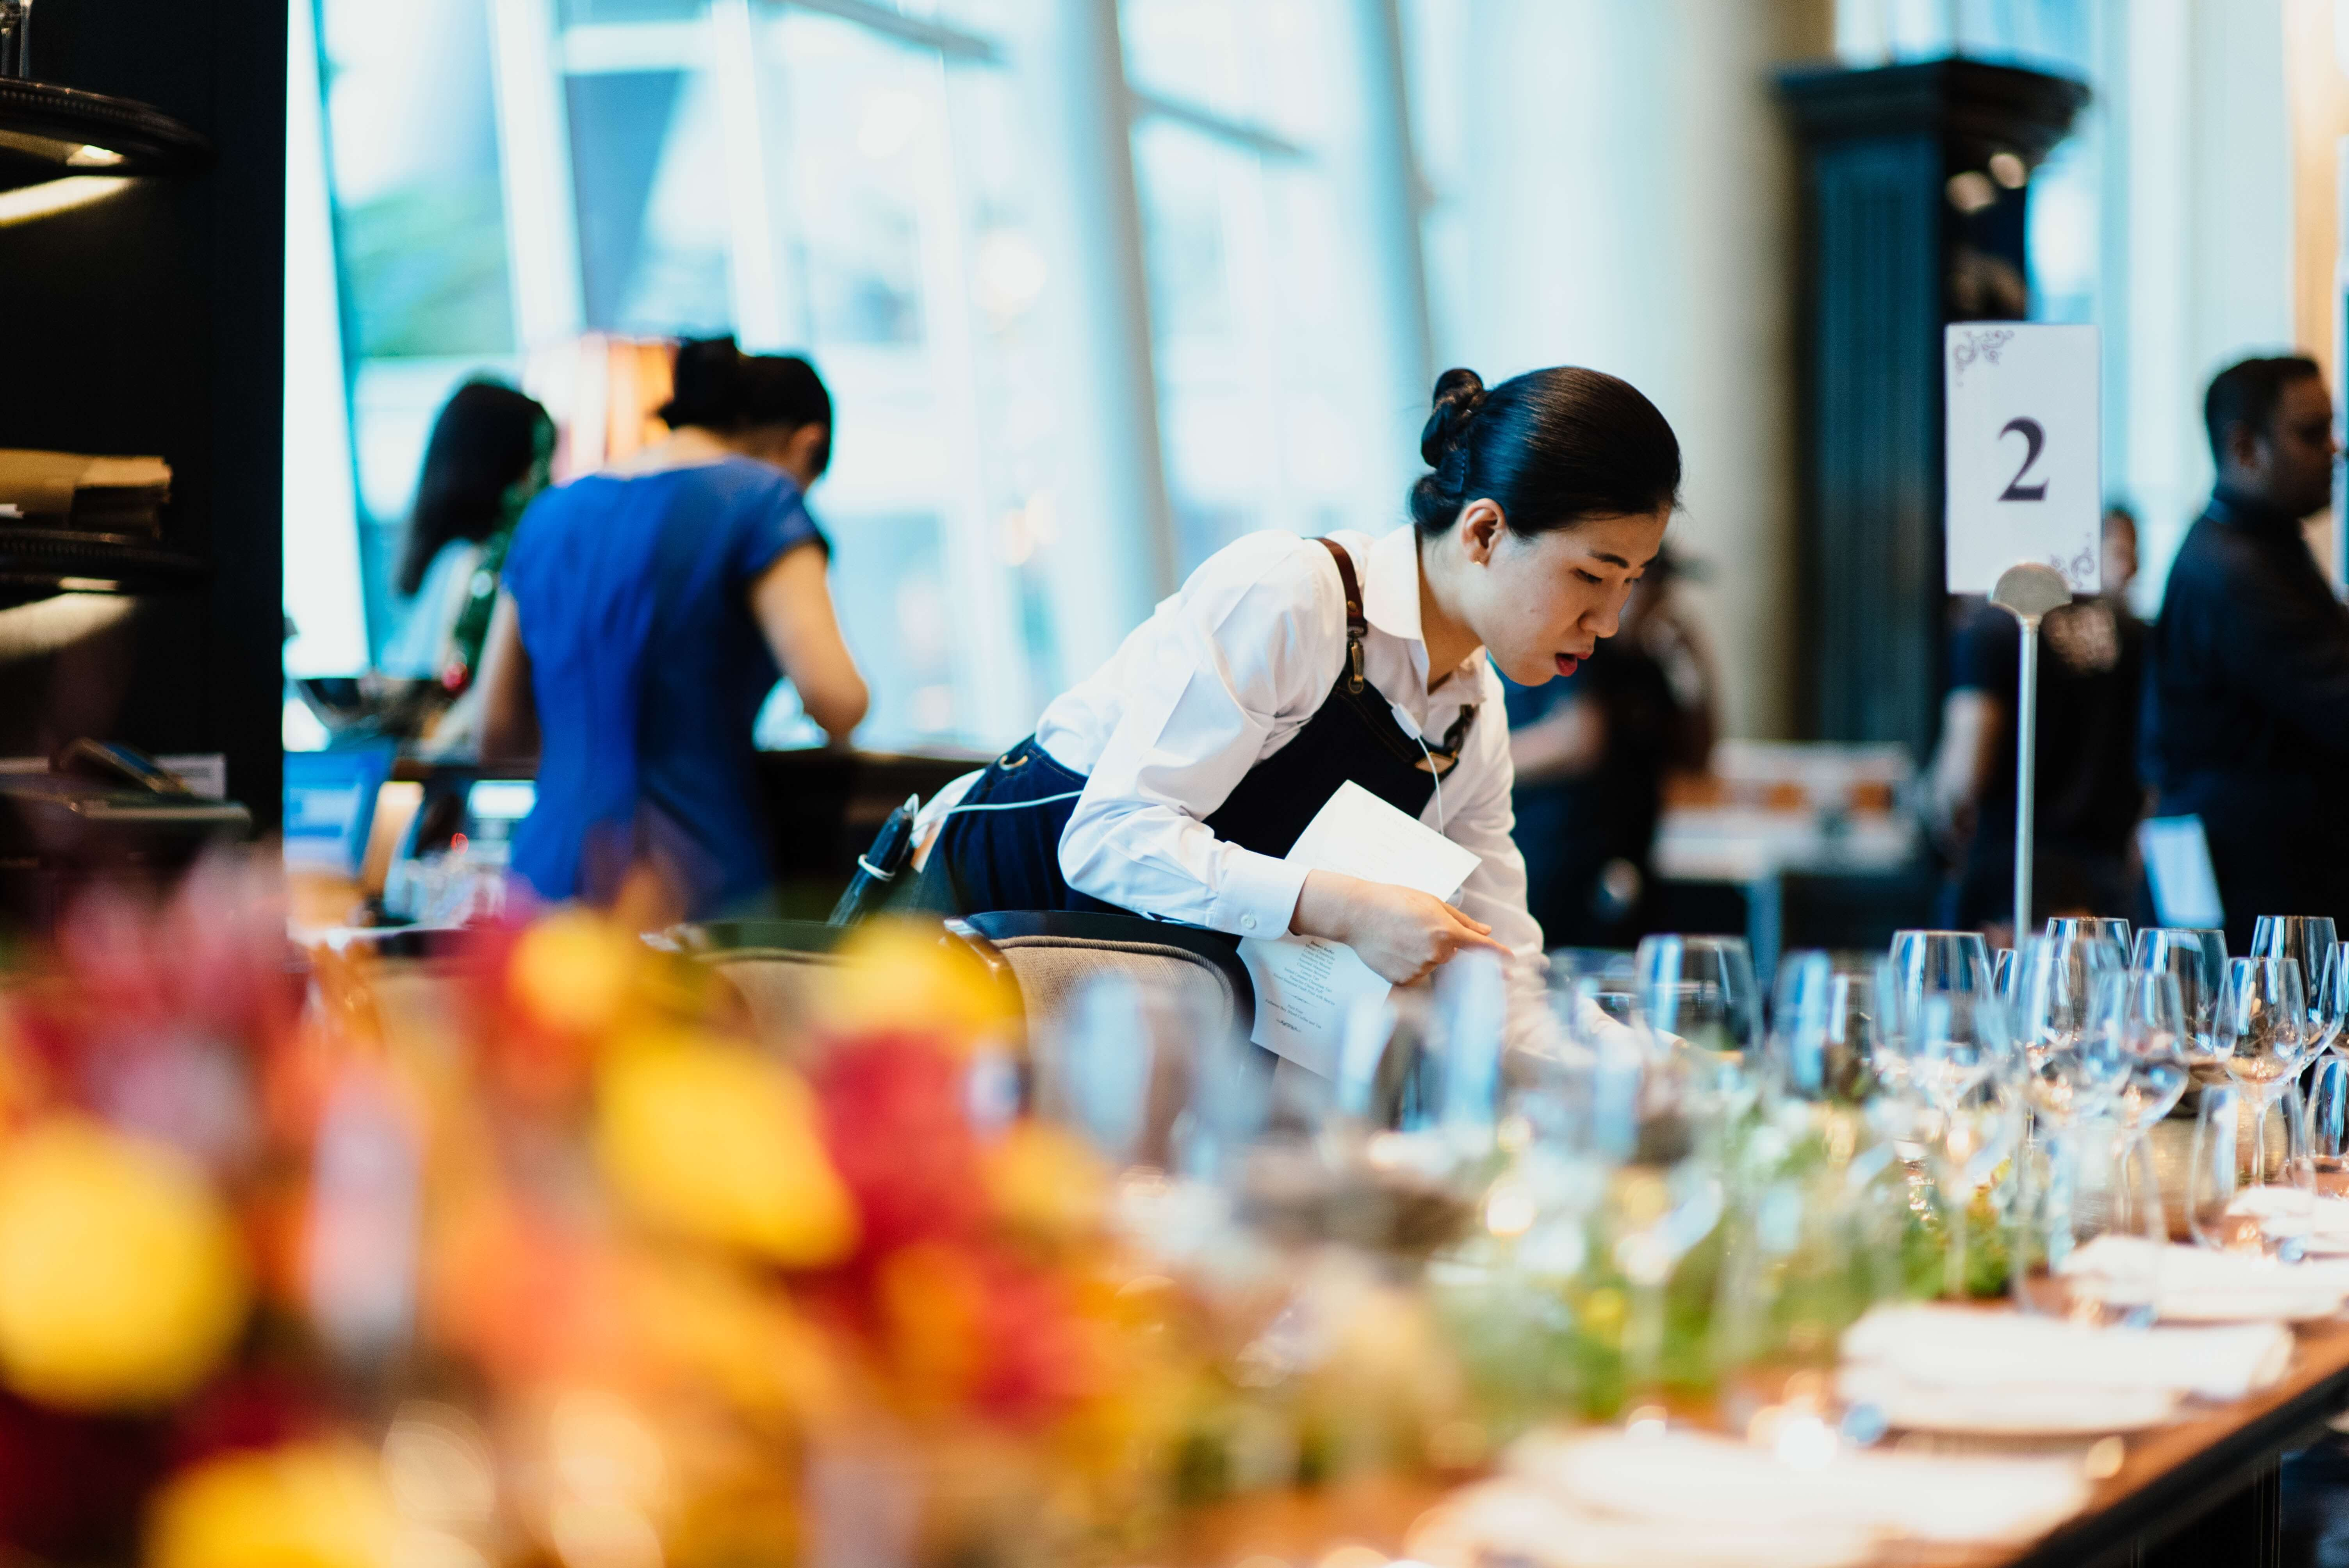 Customer service training for the hospitality industry